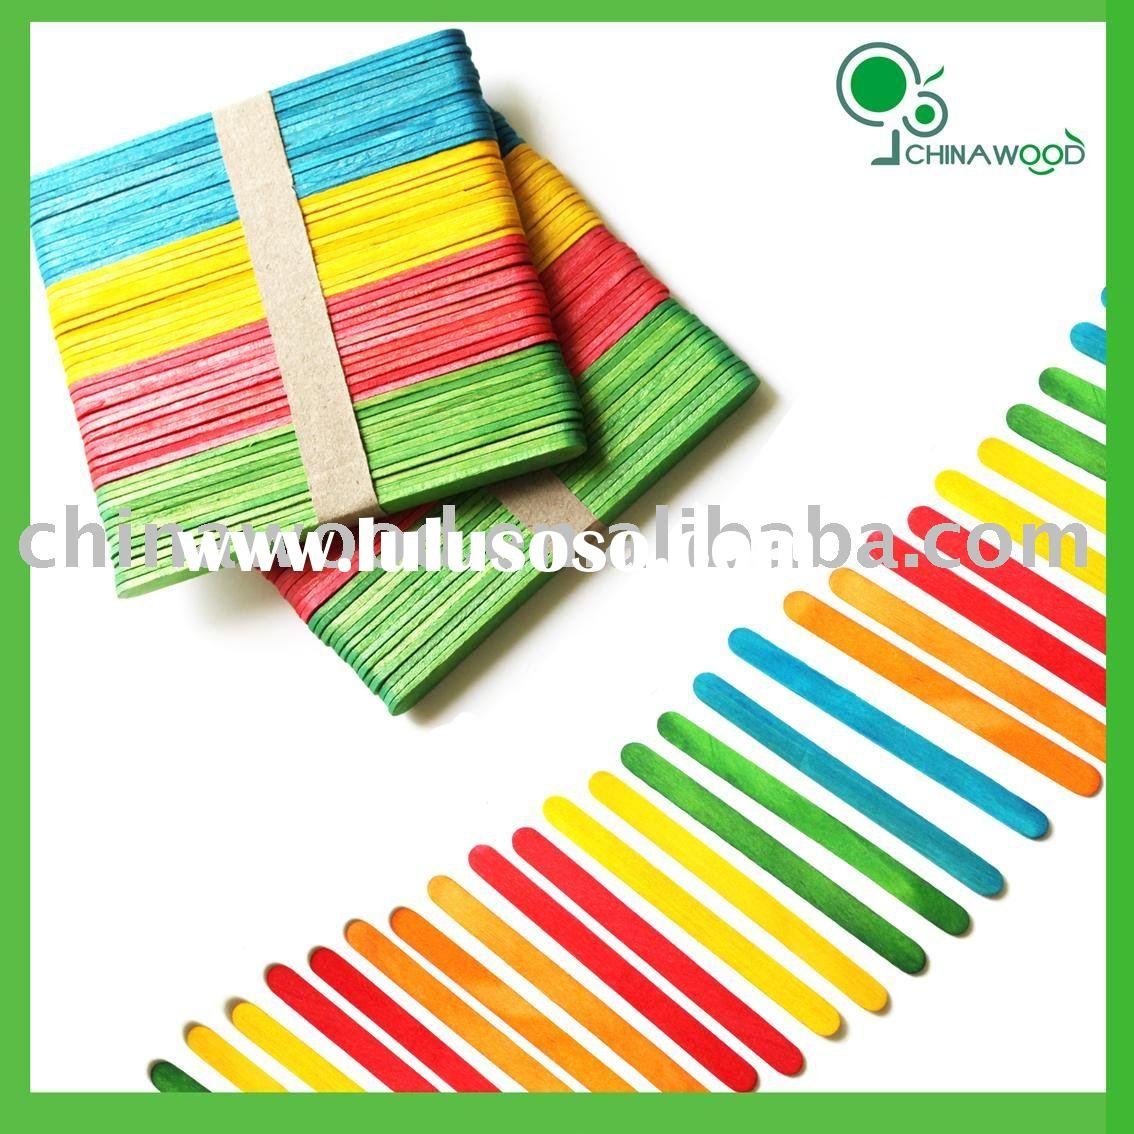 Assorted Colored Craft Woodsies Sticks